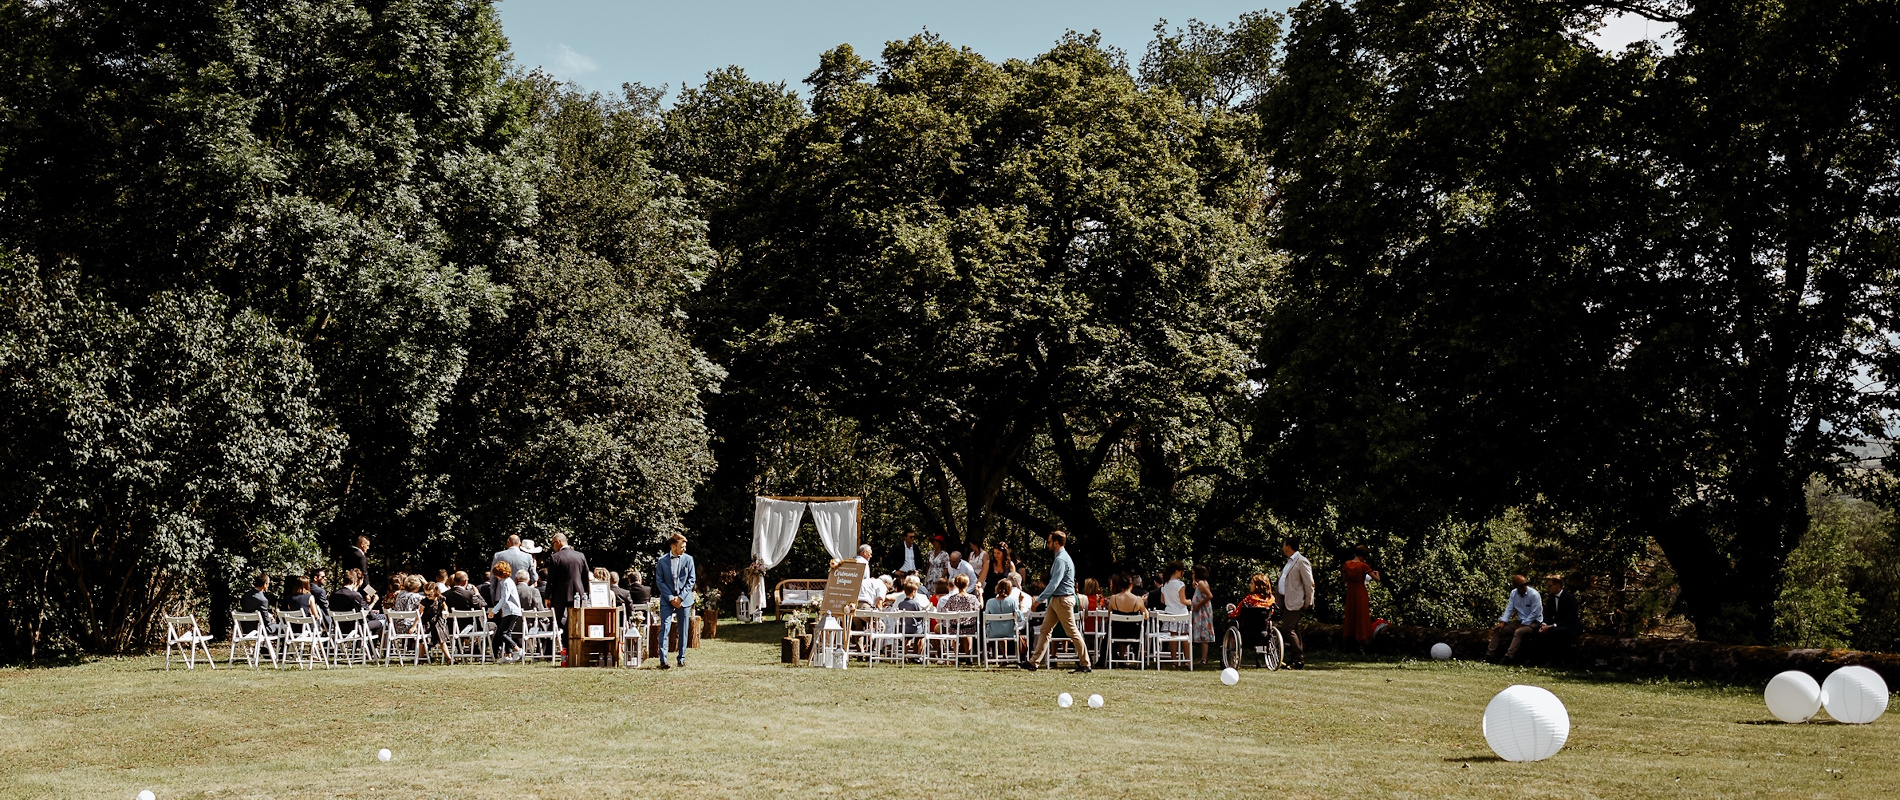 Wedding ceremony celebrated in the gardens of Château de Bois Rigaud